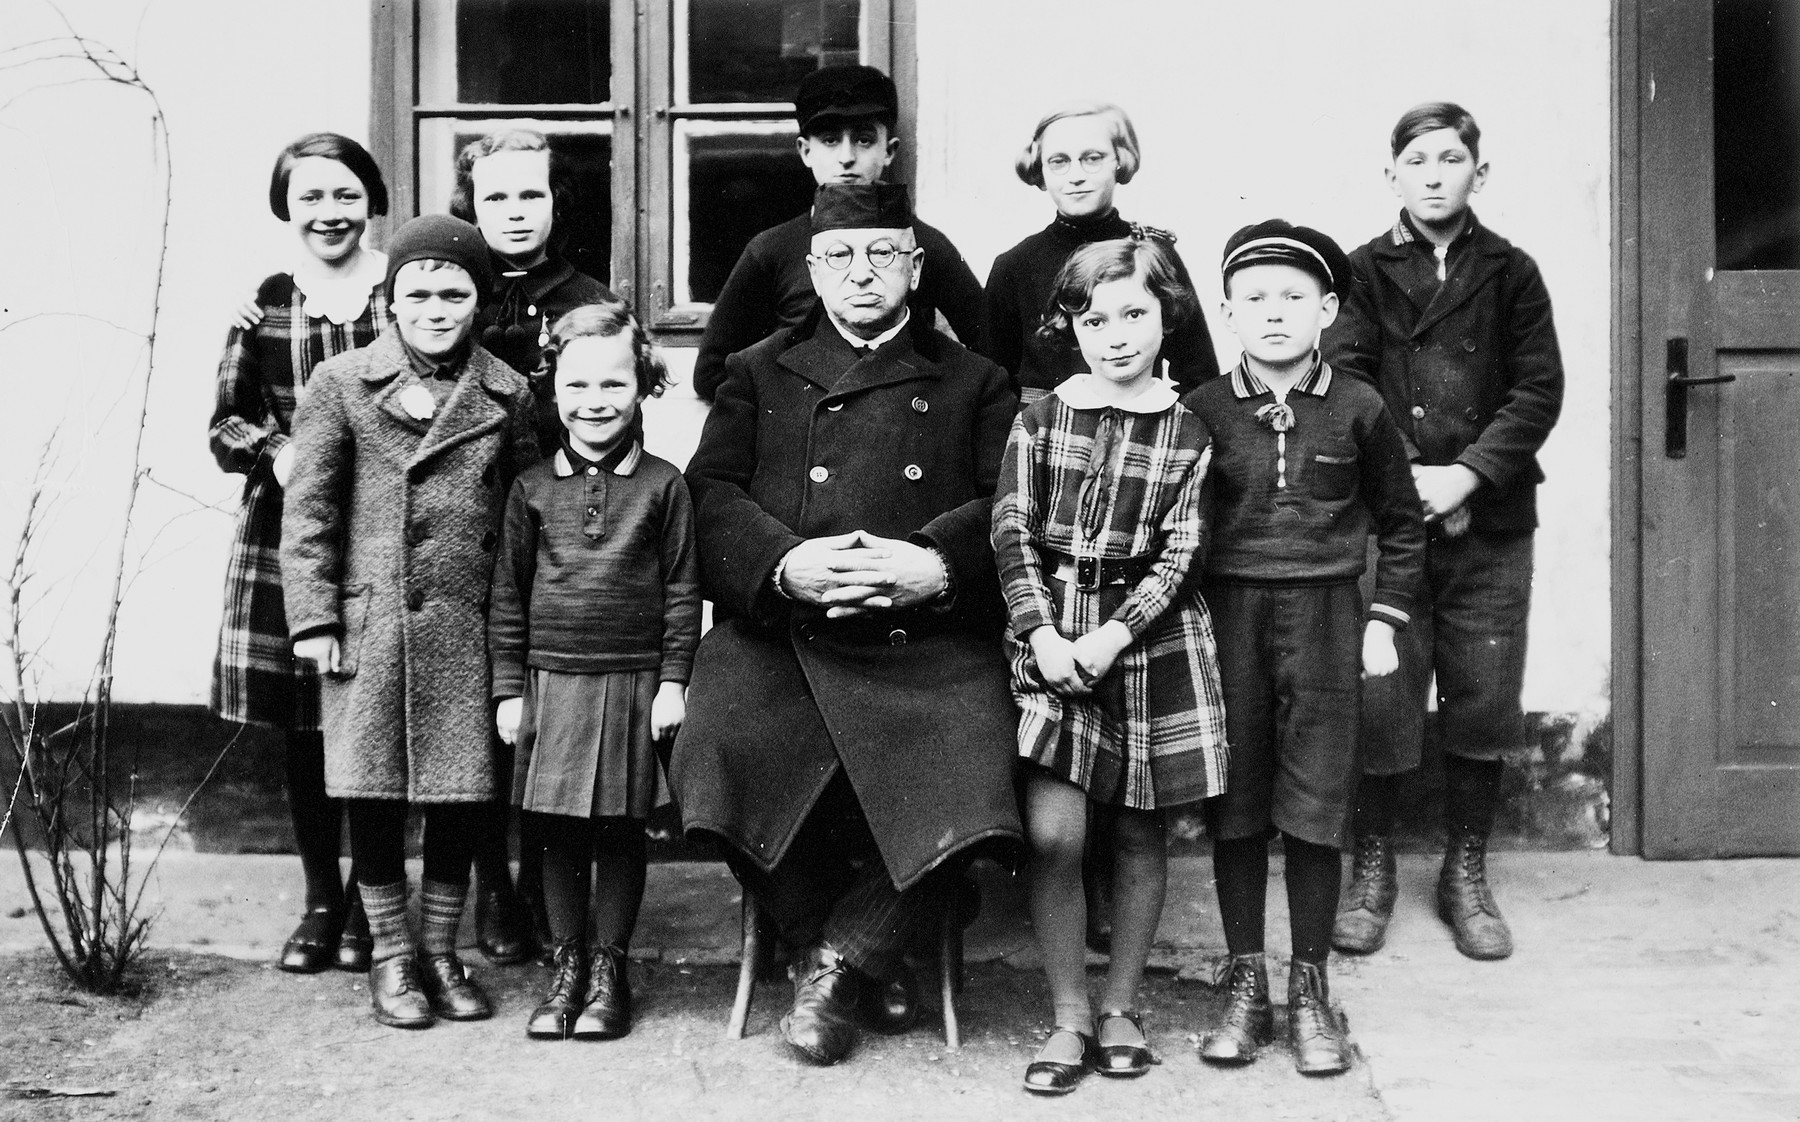 Herbert and Ruth Karliner (front row, left) pose with a group of children and an unidentified man outside a building in Peiskretscham, Germany.